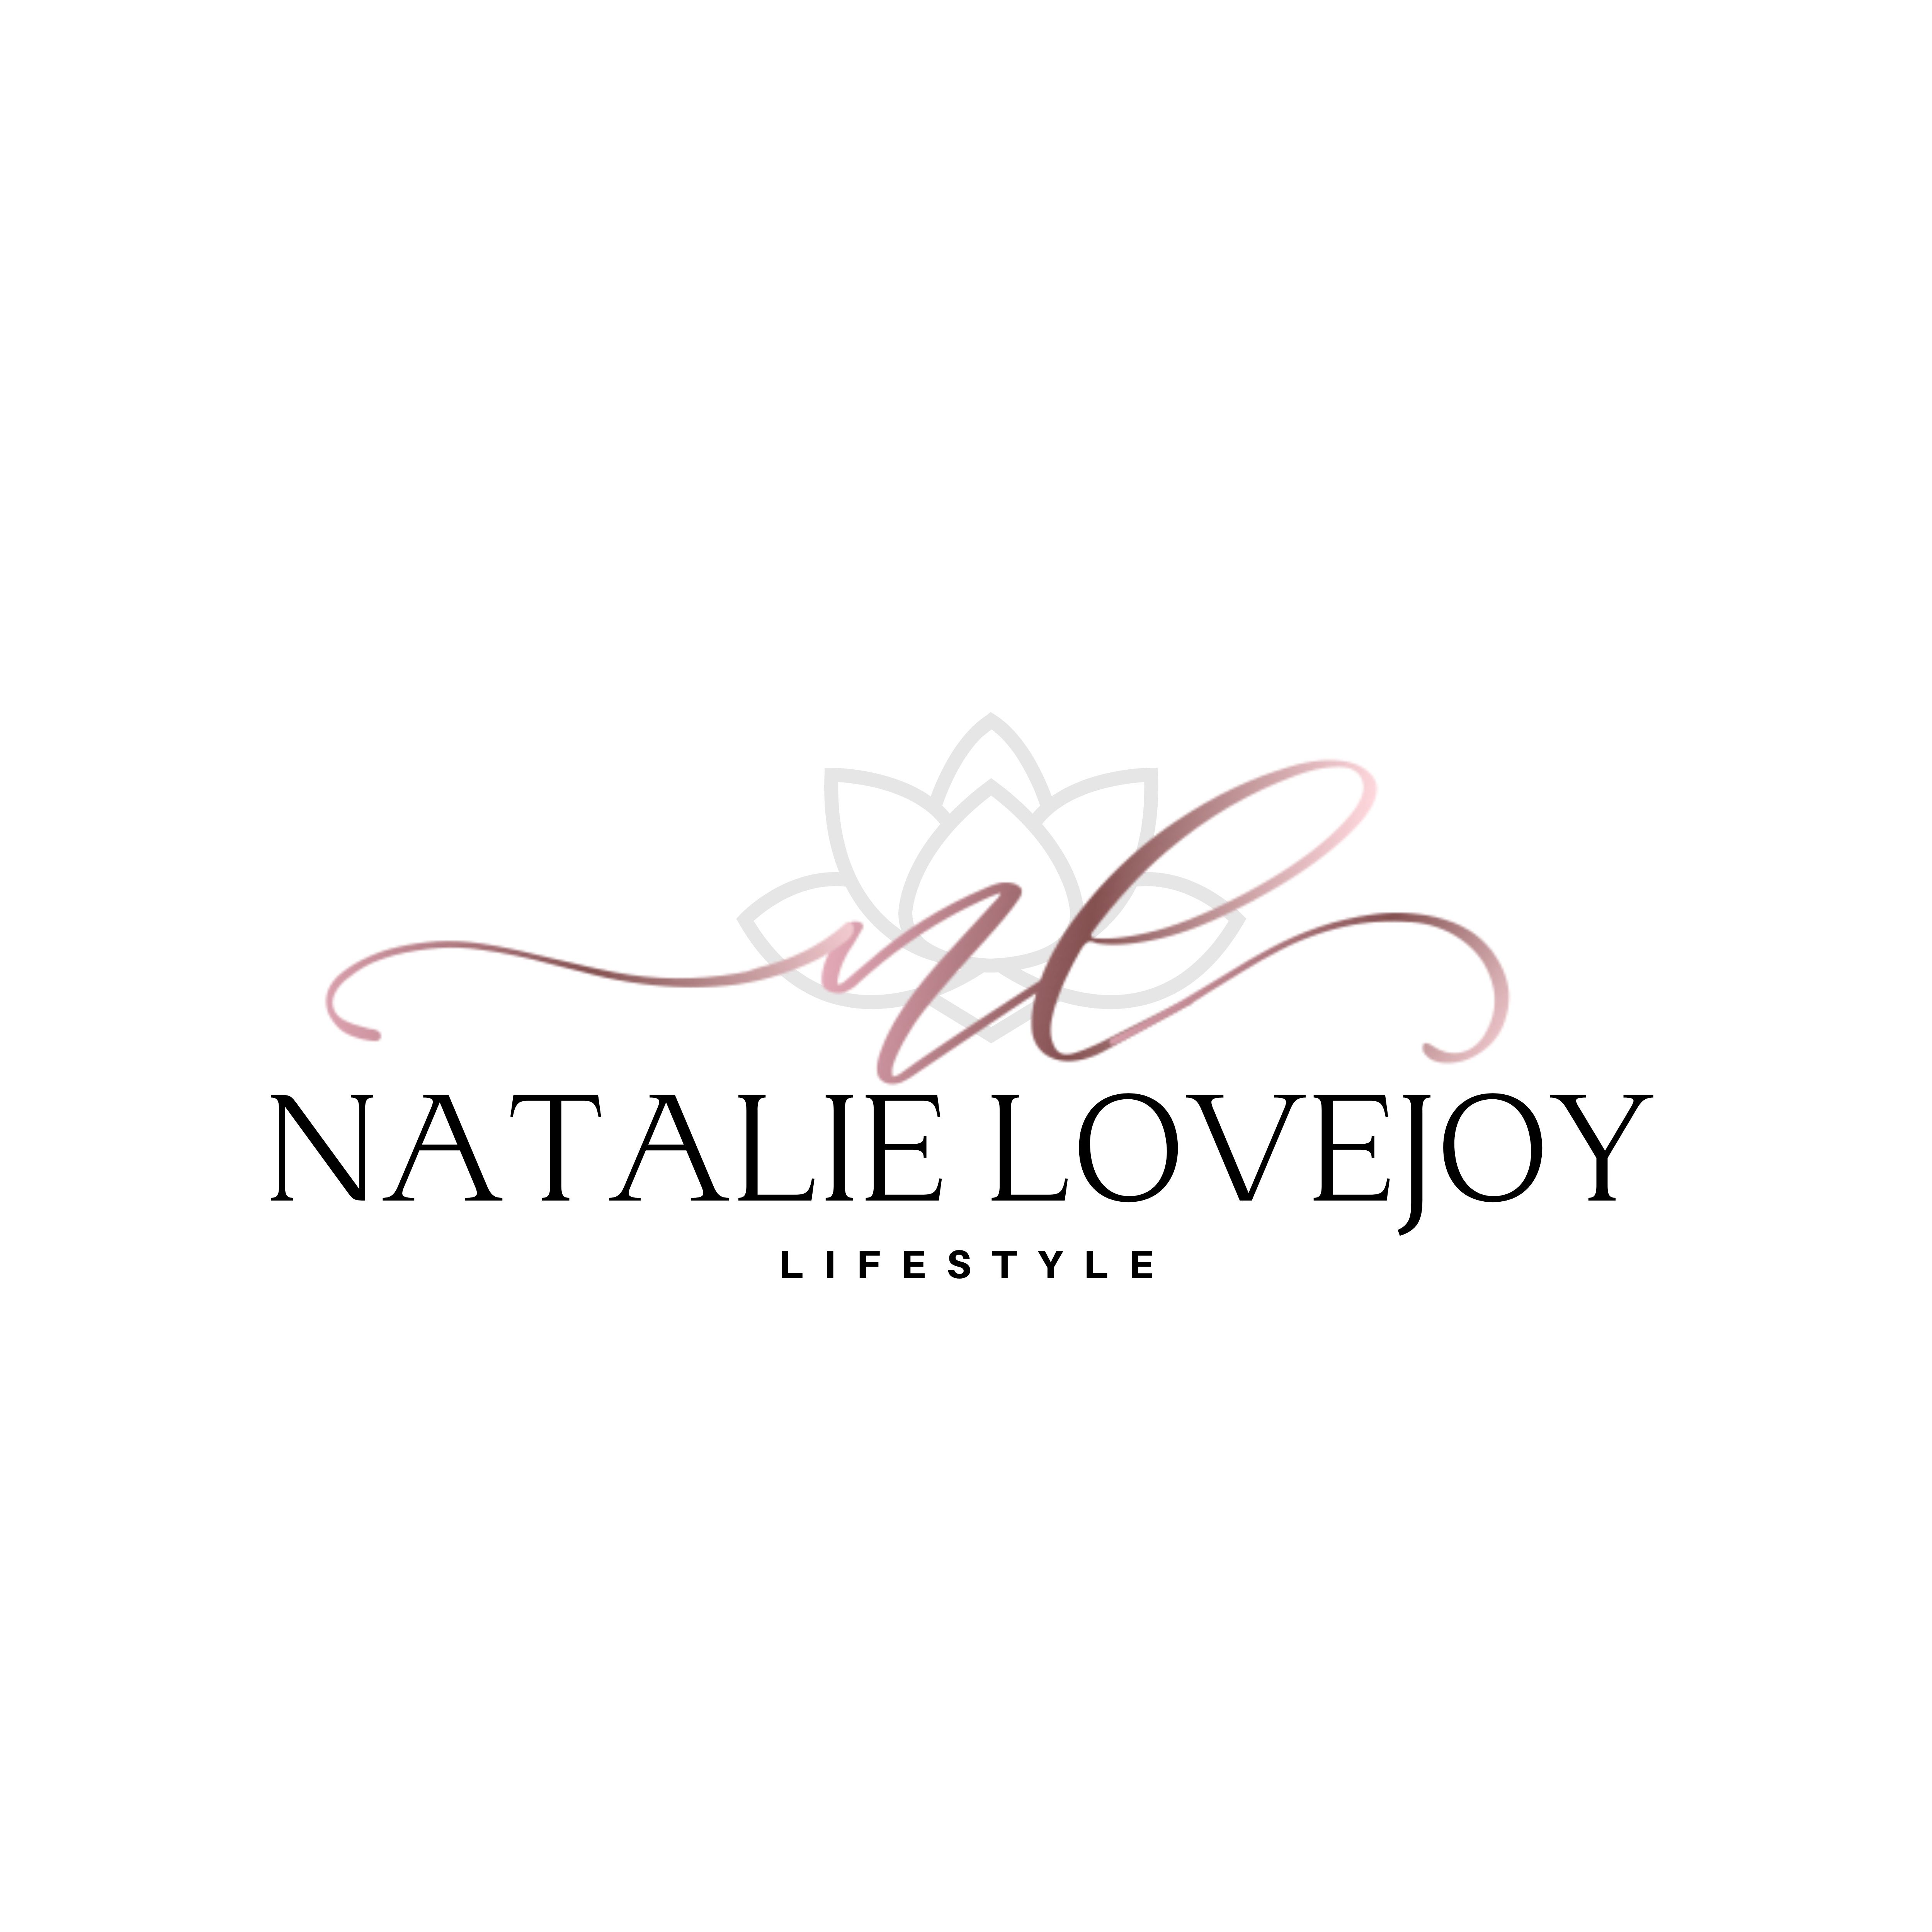 Natalie Lovejoy Lifestyle